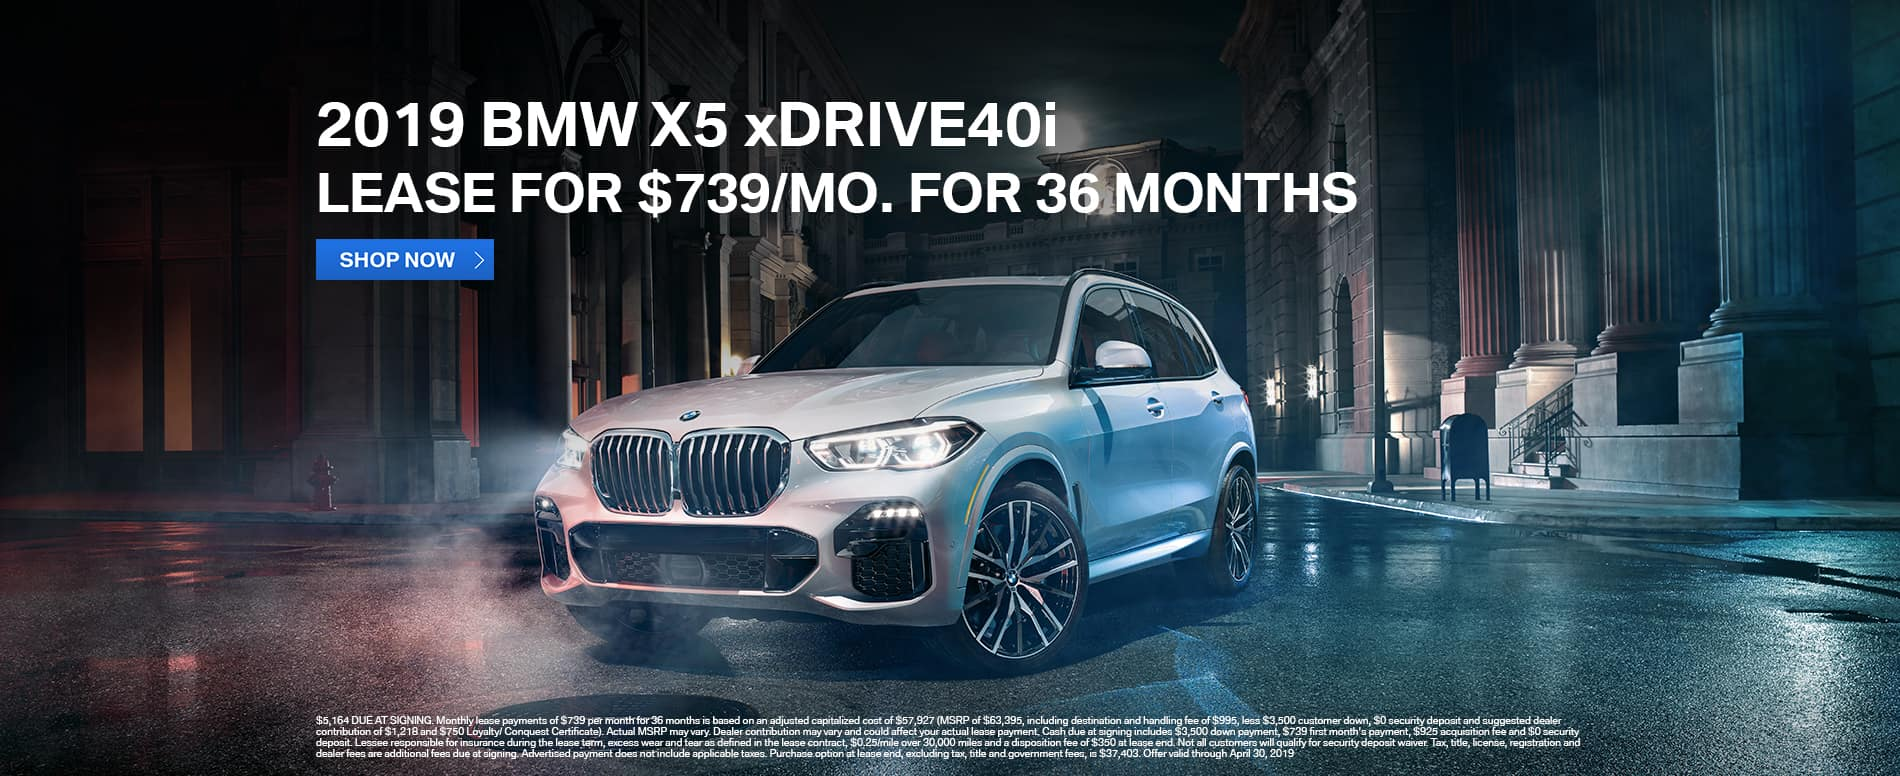 lease-bmw-x5-xdrive-40i-739-mo-beaumont